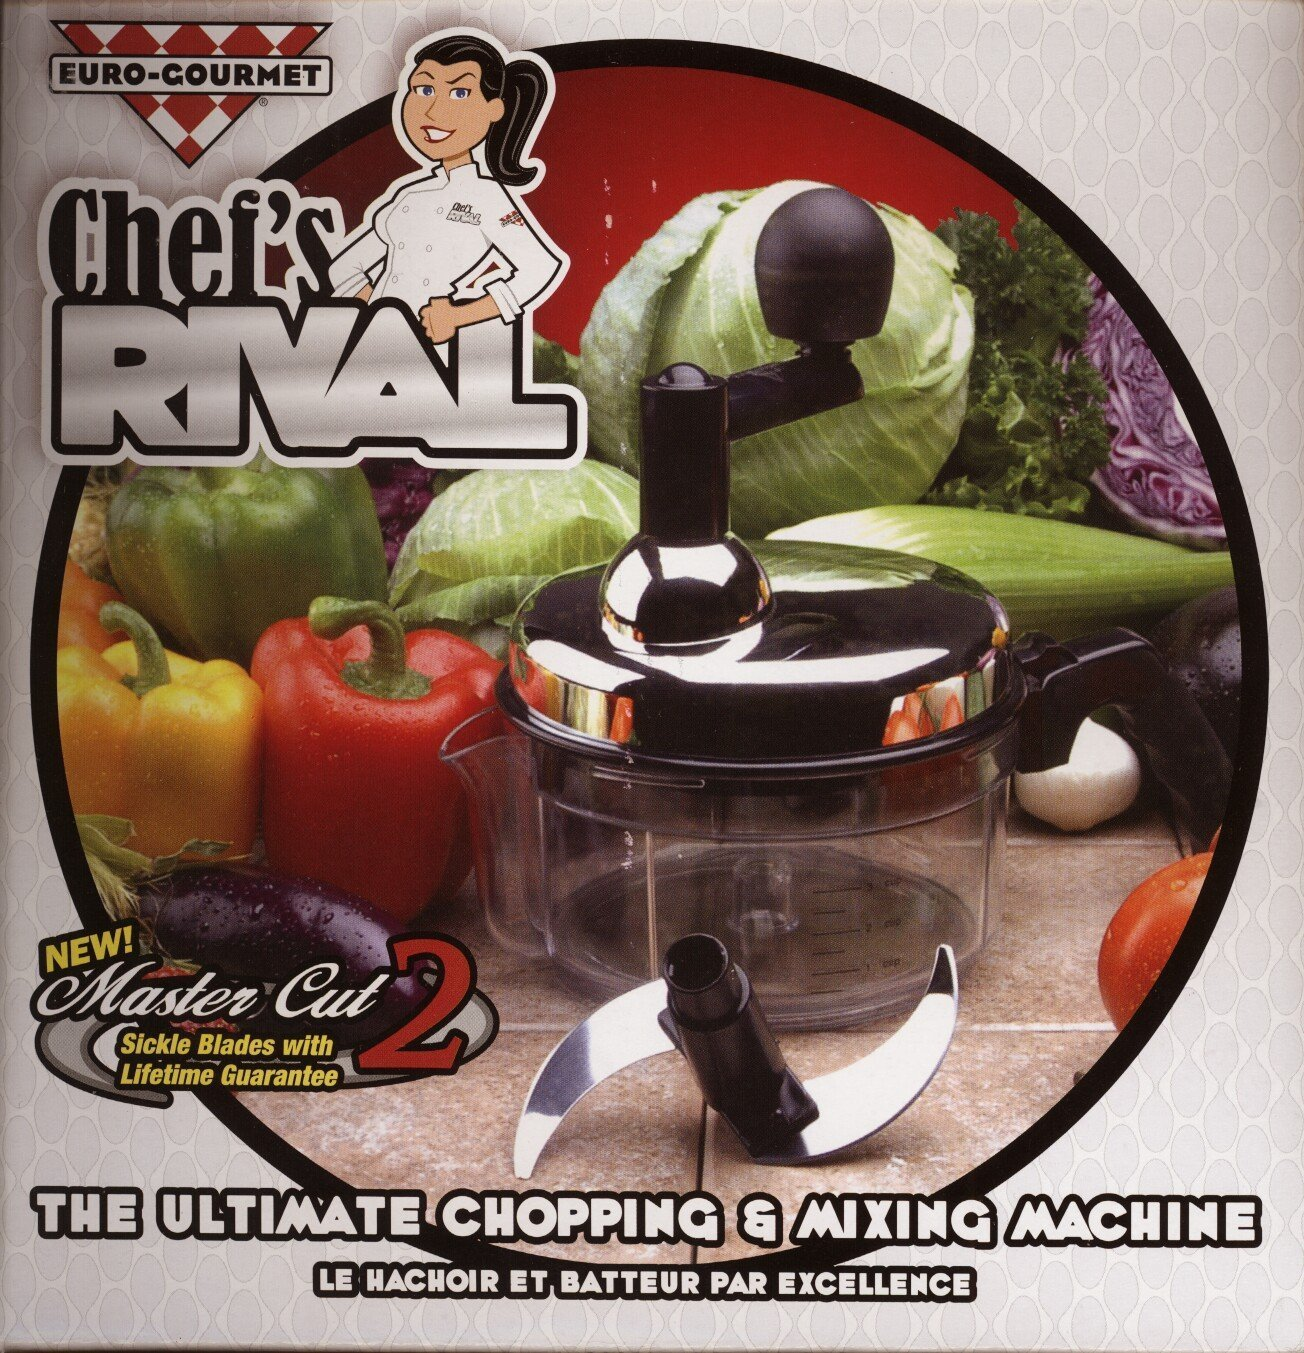 Chef's Rival Chopper - The Ultimate Euro-Gourmet Chopping & Mixing Machine by Chefs Rival